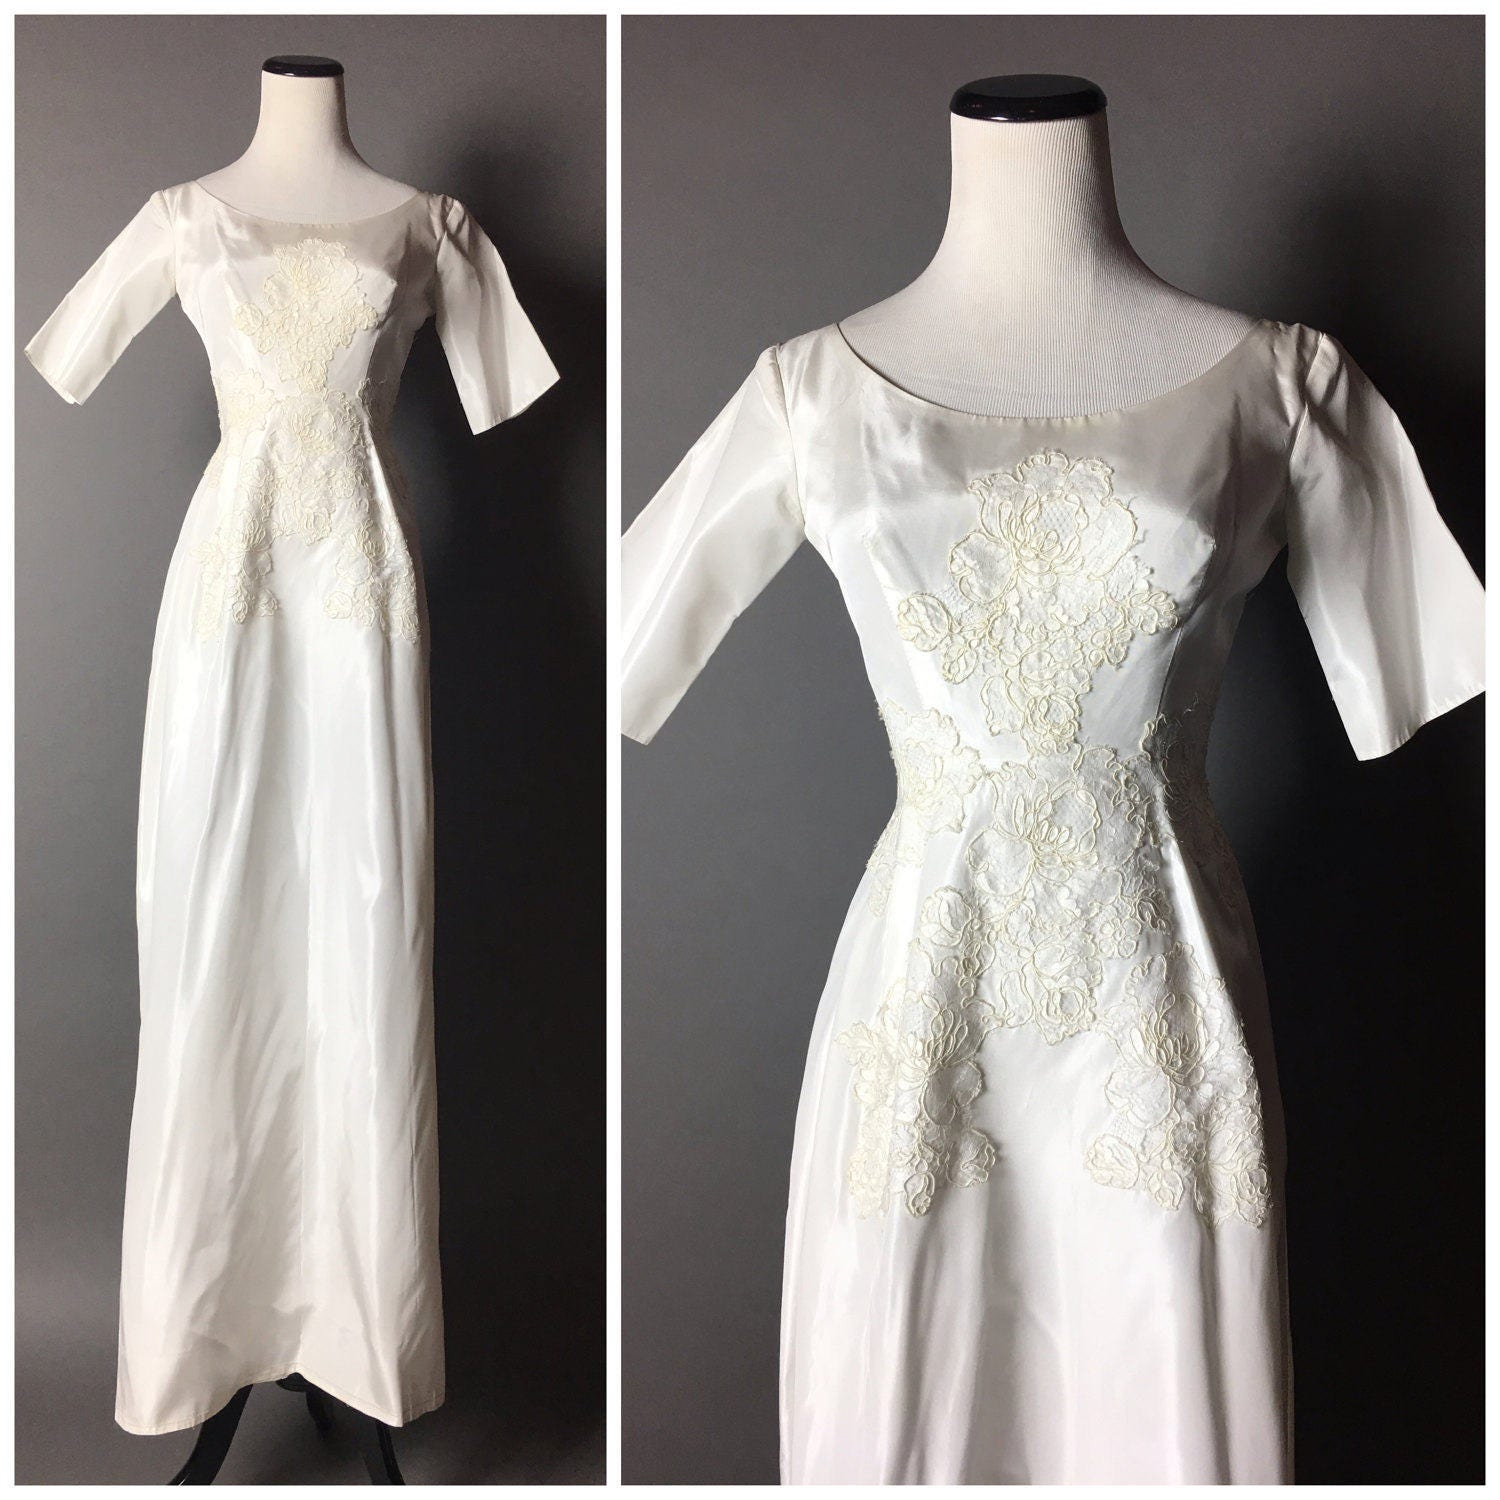 Vintage Wedding Dresses 1960s: Vintage 60s Wedding Dress / 1960s Wedding Dress